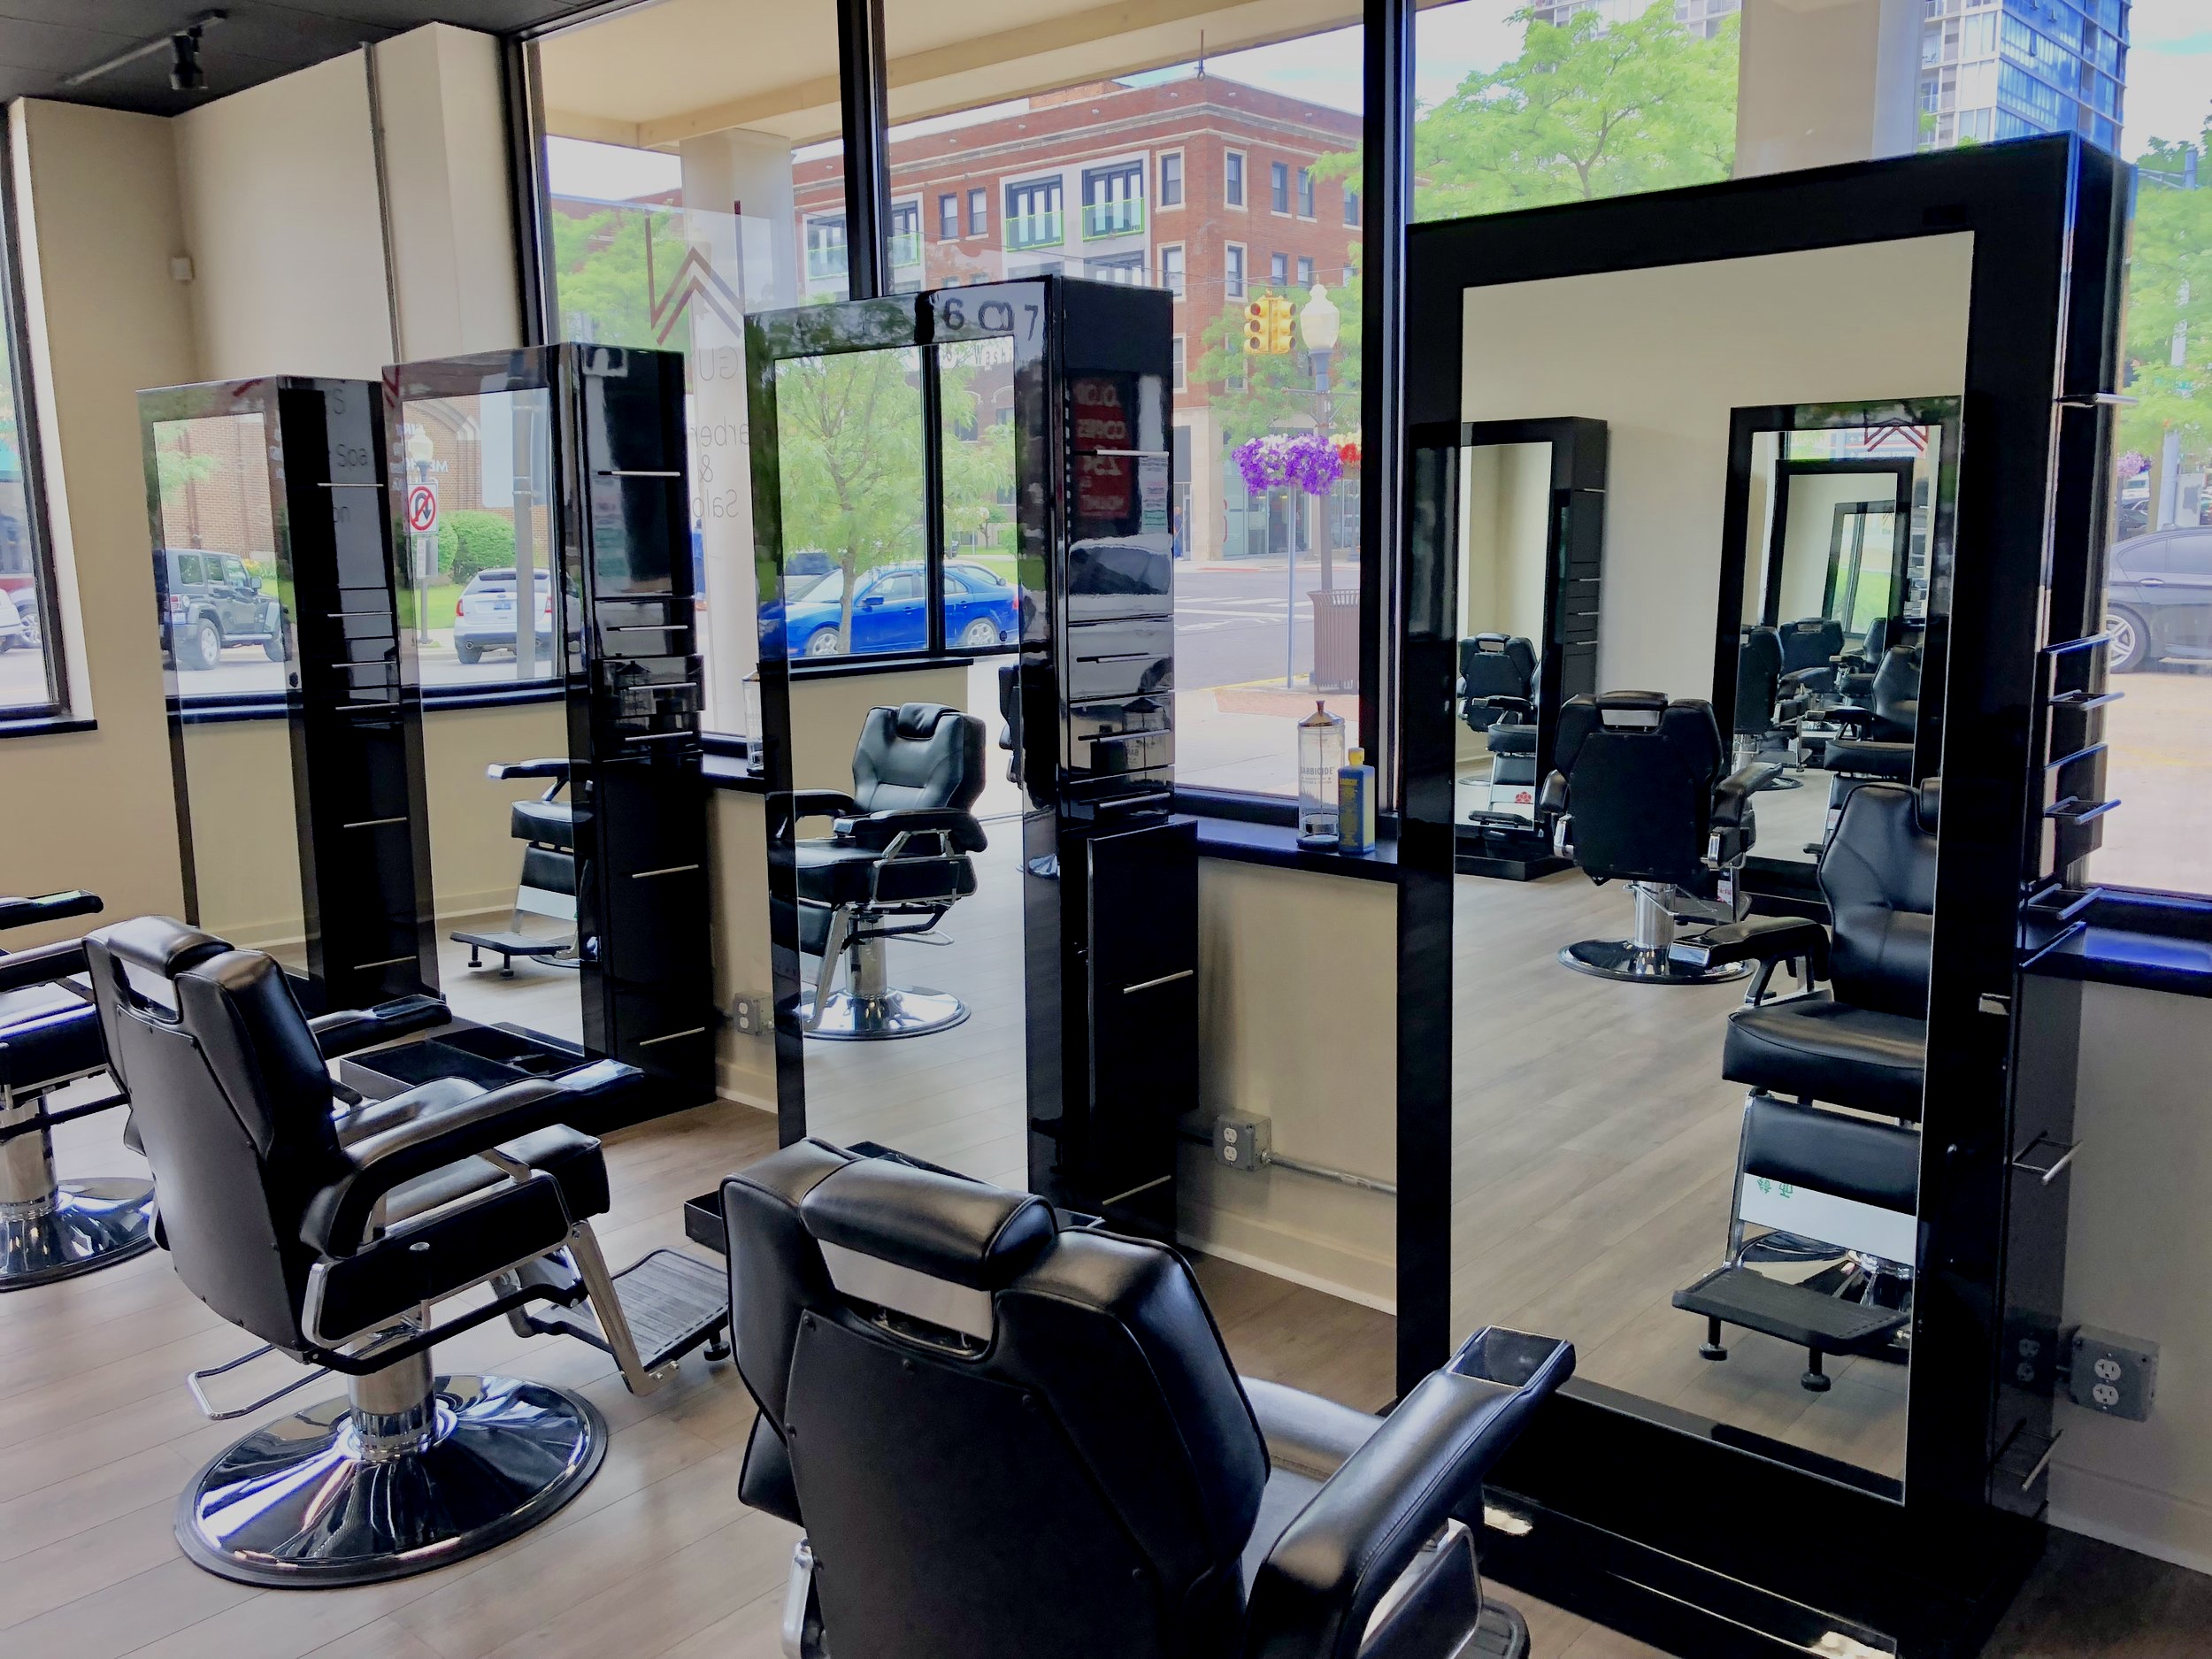 Great View Overlooking The Downtown Spacious And Unique Haircutting Floor Surrounding By Tall Window's, Our Stylist and Client's Enjoy A Great View Over Looking Do  -